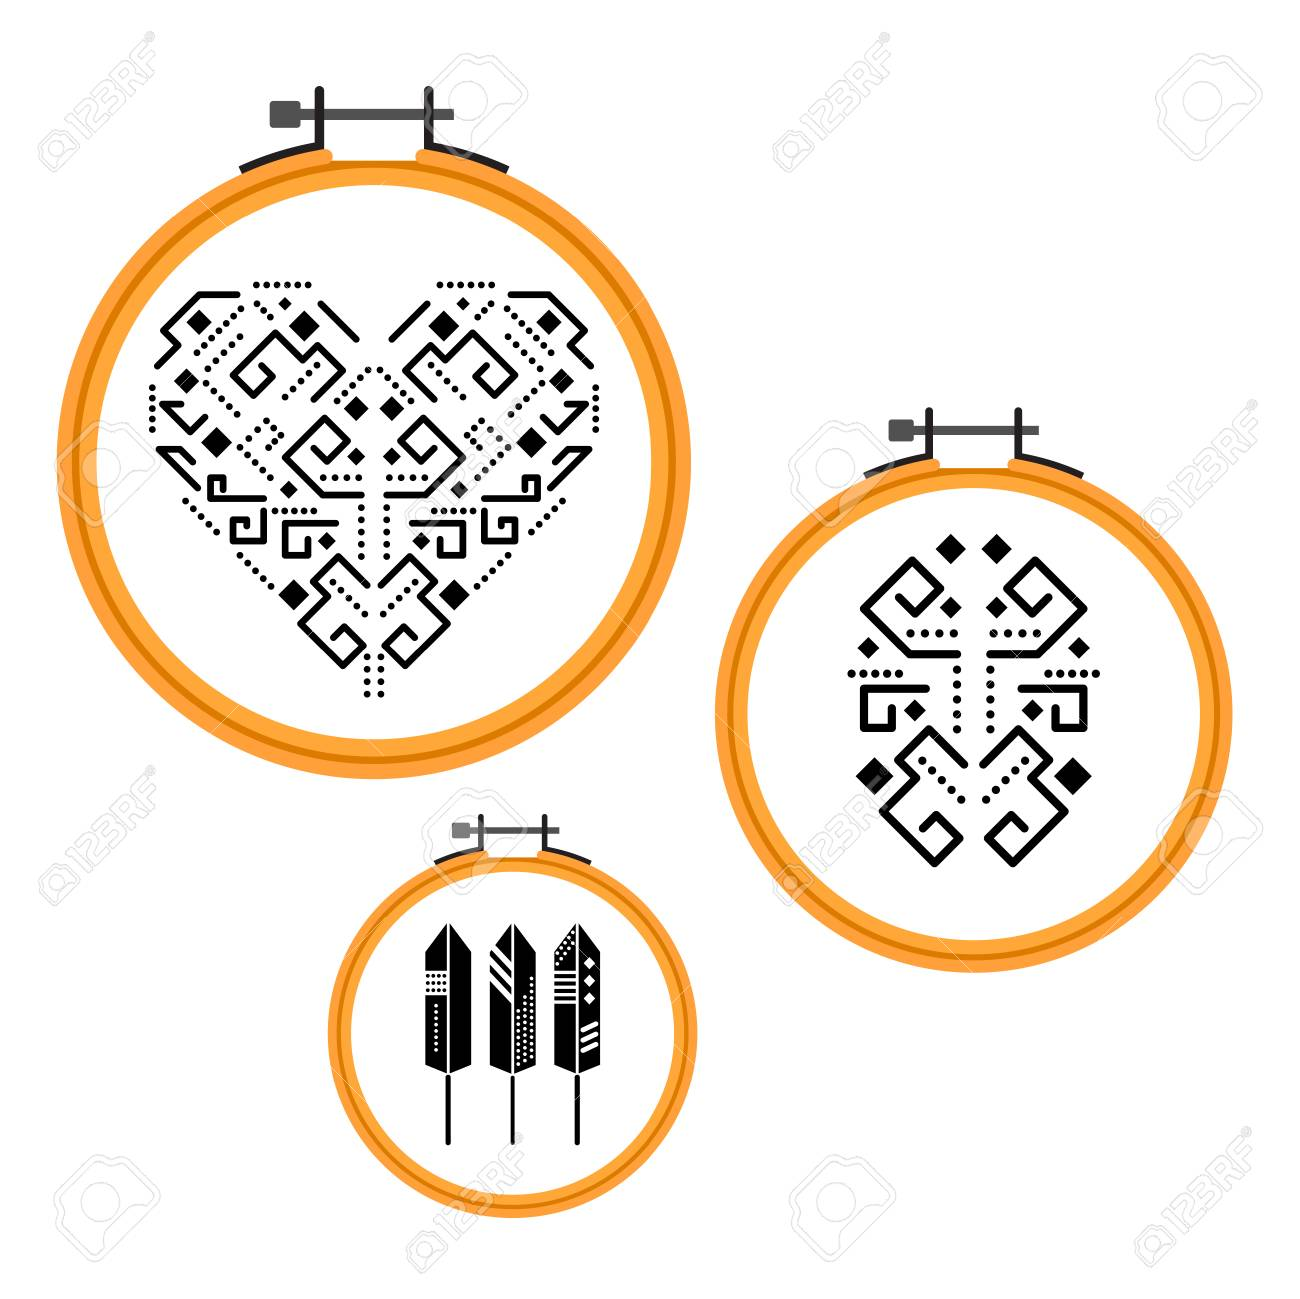 Needlework Tribal Design On Embroidery Hoops. Wooden Round Frames ...